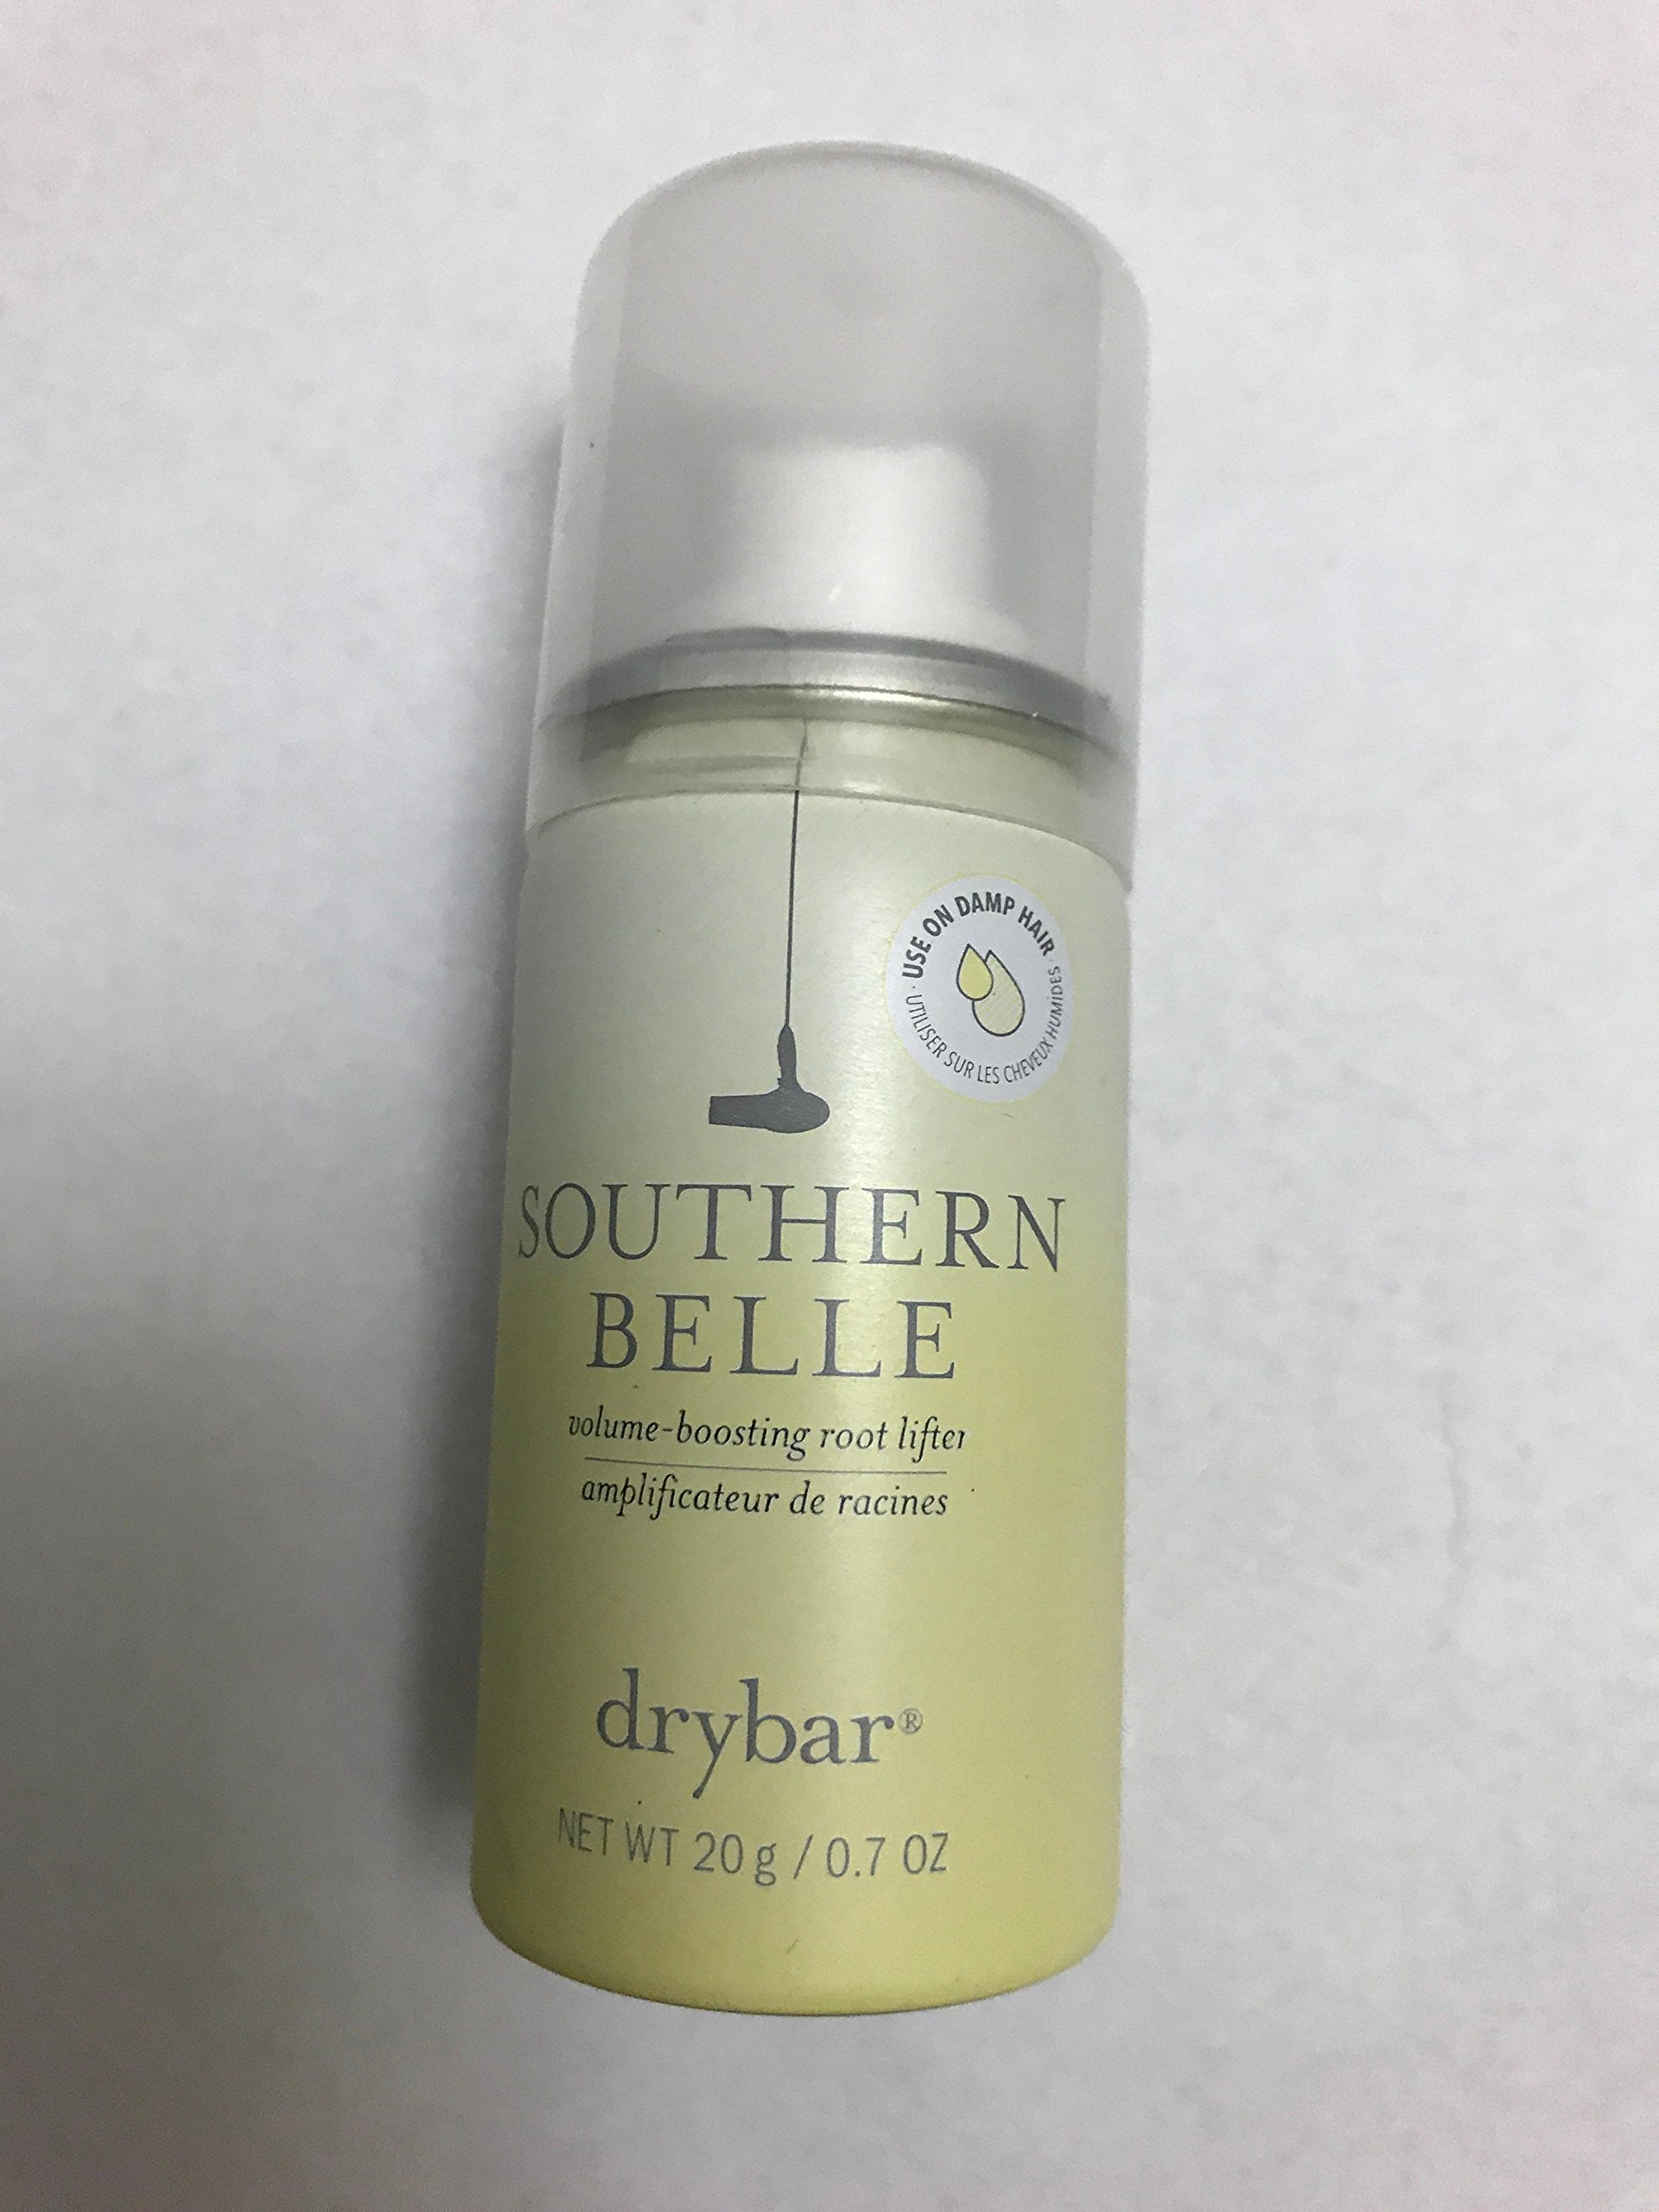 DRYBAR Southern Belle Volume-Boosting Root Lifter - Travel size 0.7 oz/20g